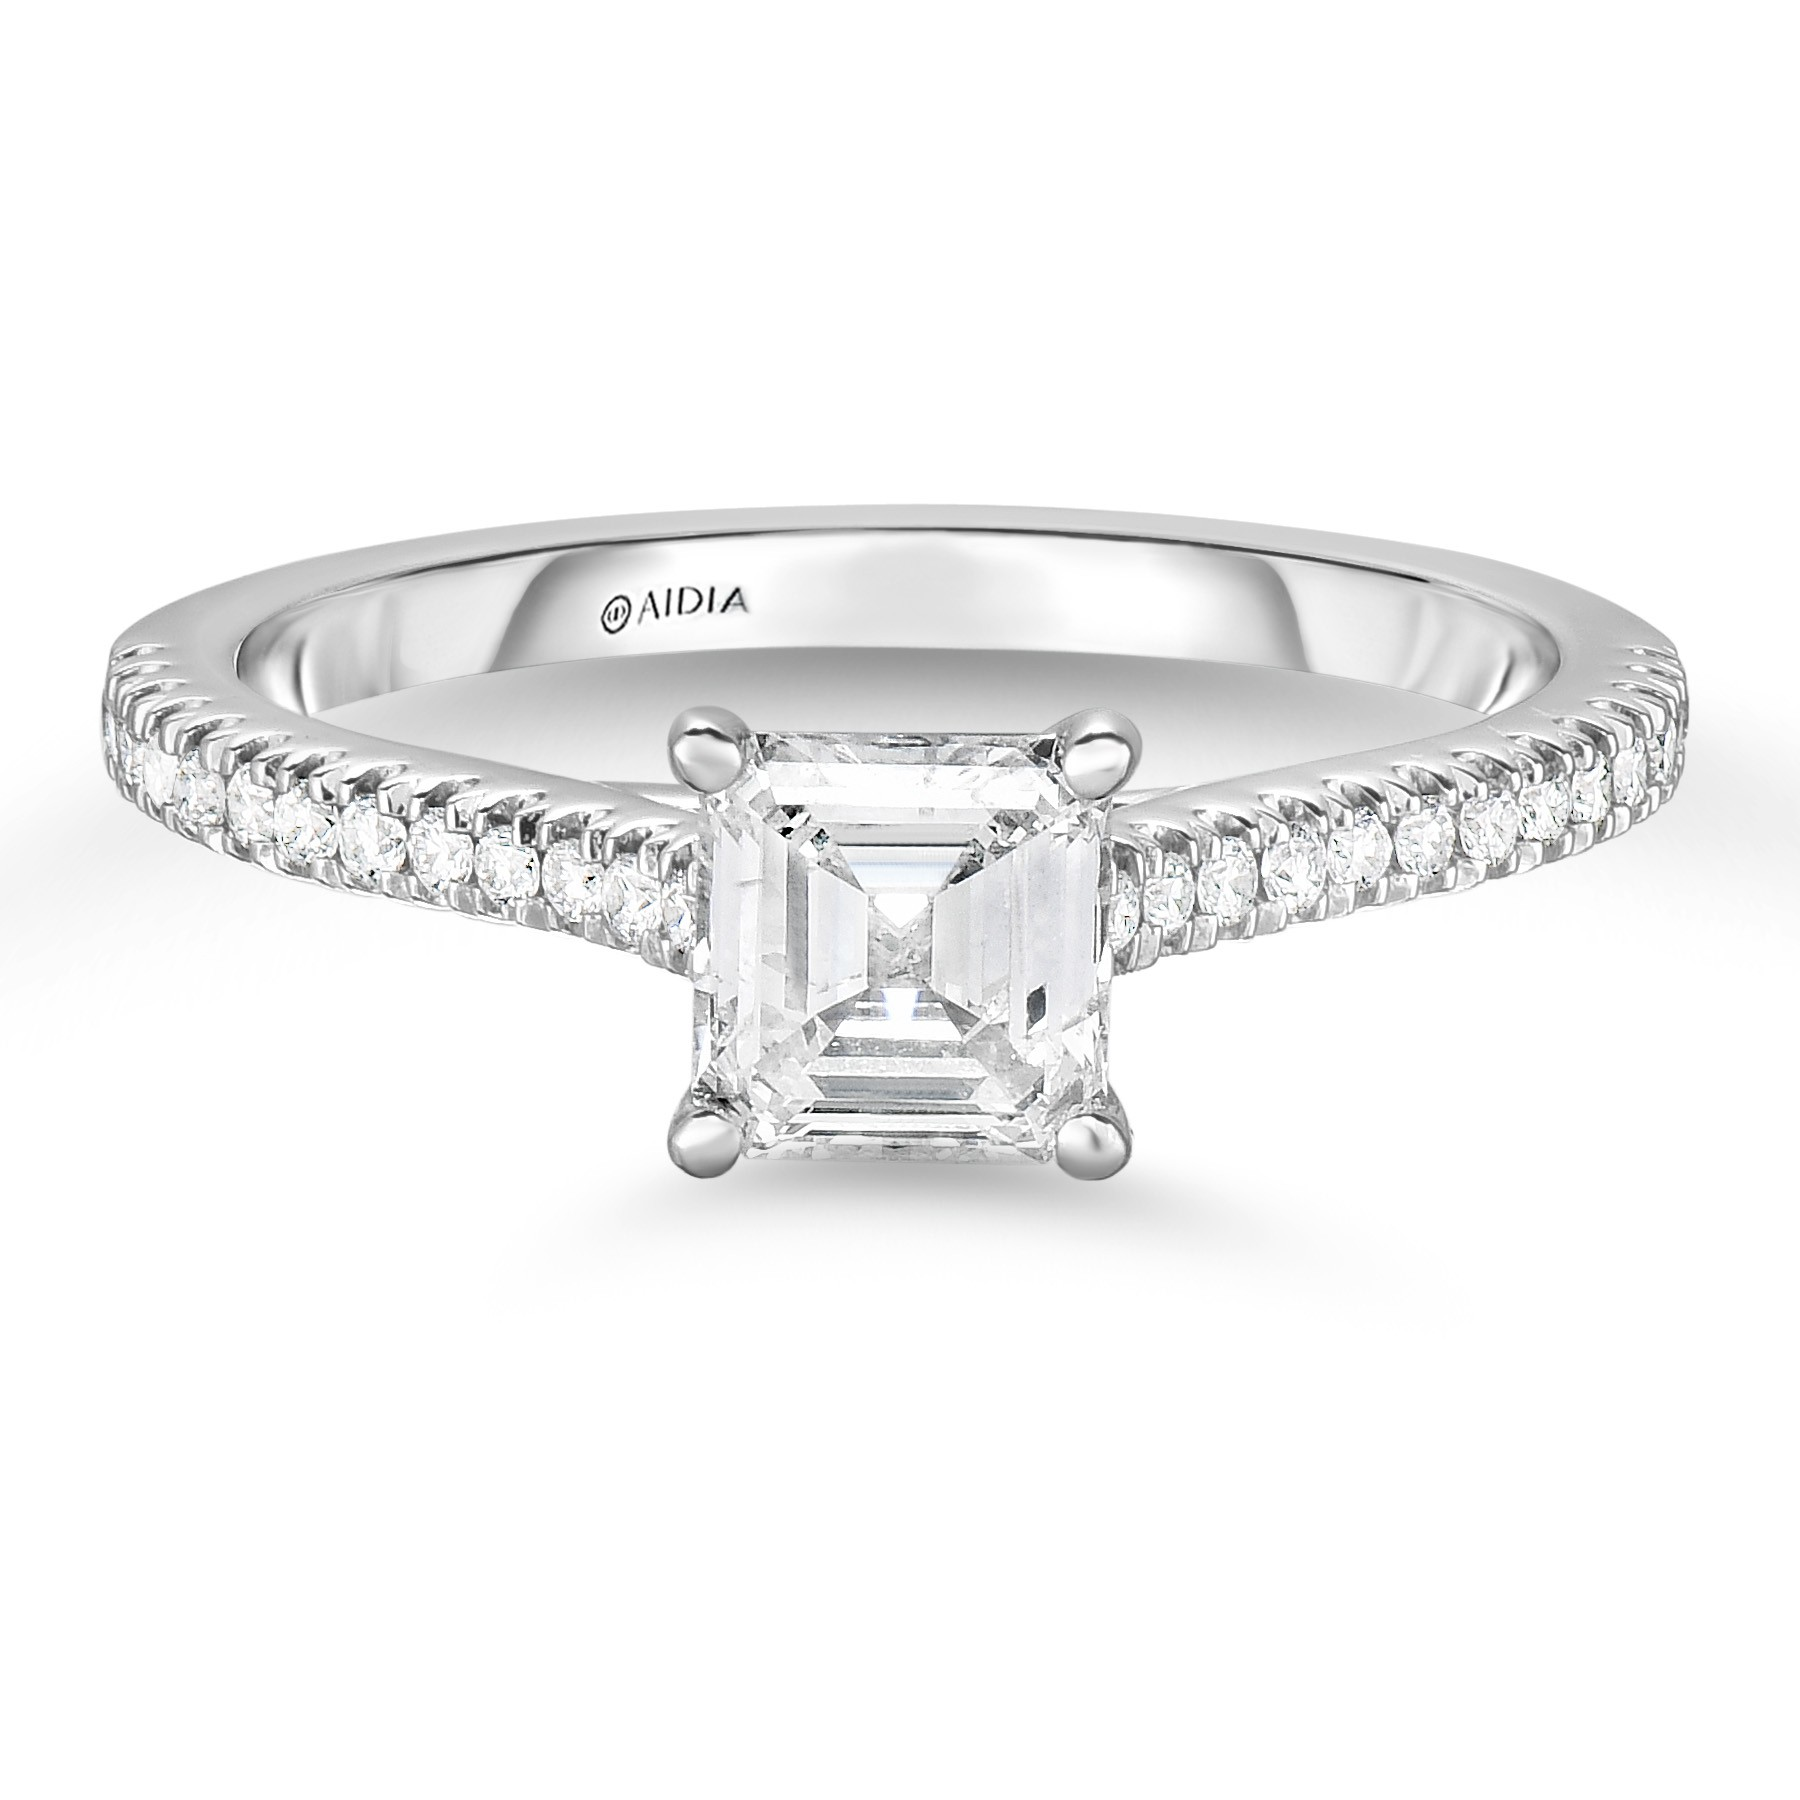 14K White Gold Classic Engagement Ring with a 0.70ct G, SI2 Asscher Cut Lab Created Diamond